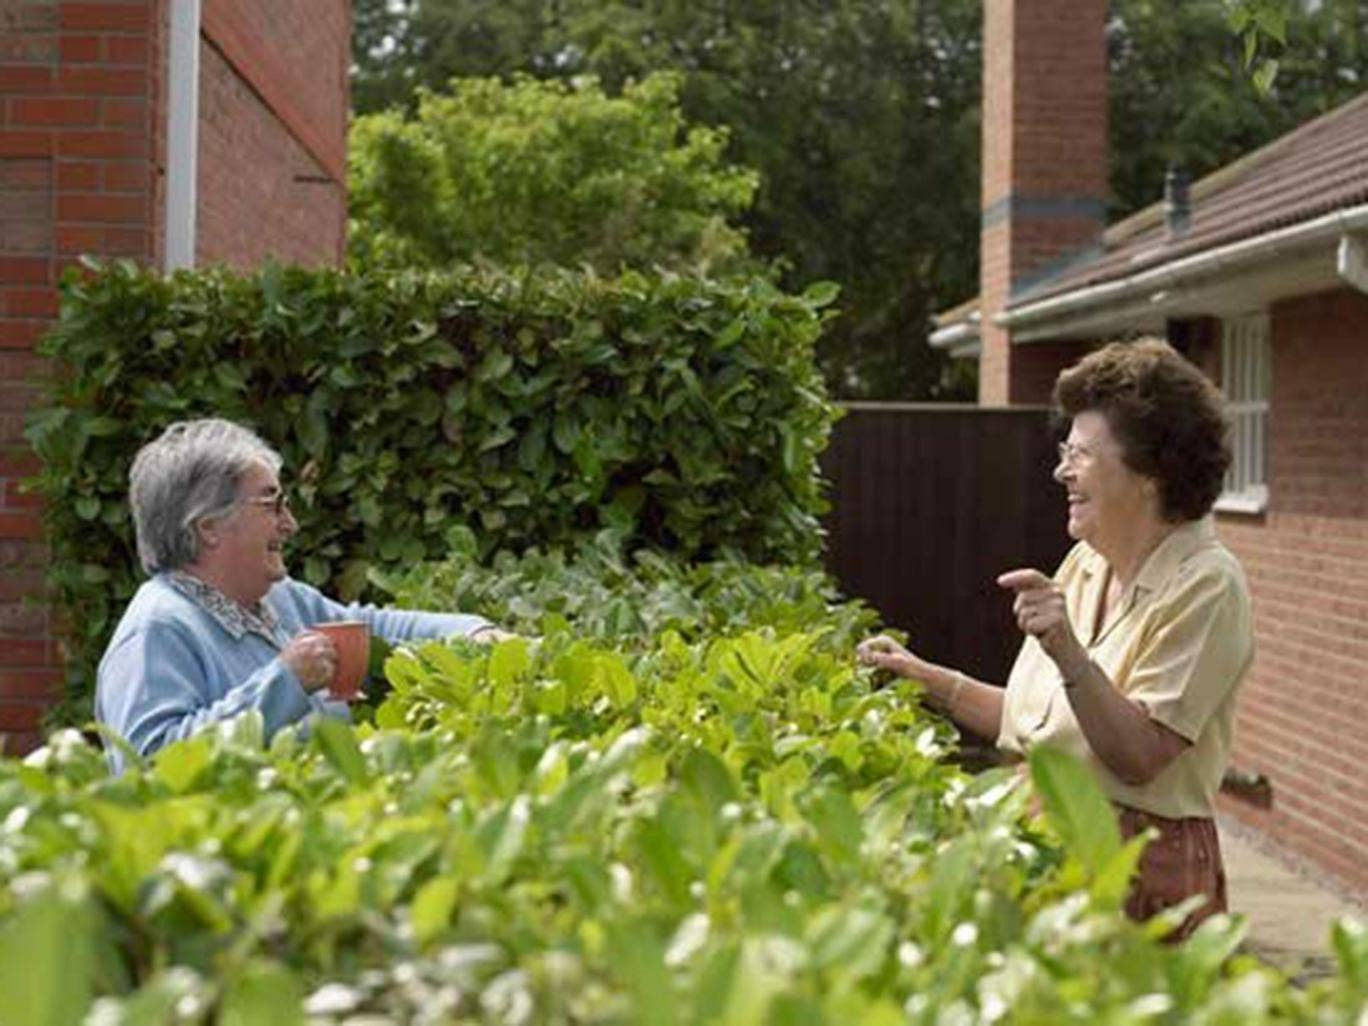 Getting on well with the people in your community could have health benefits, particularly for the elderly